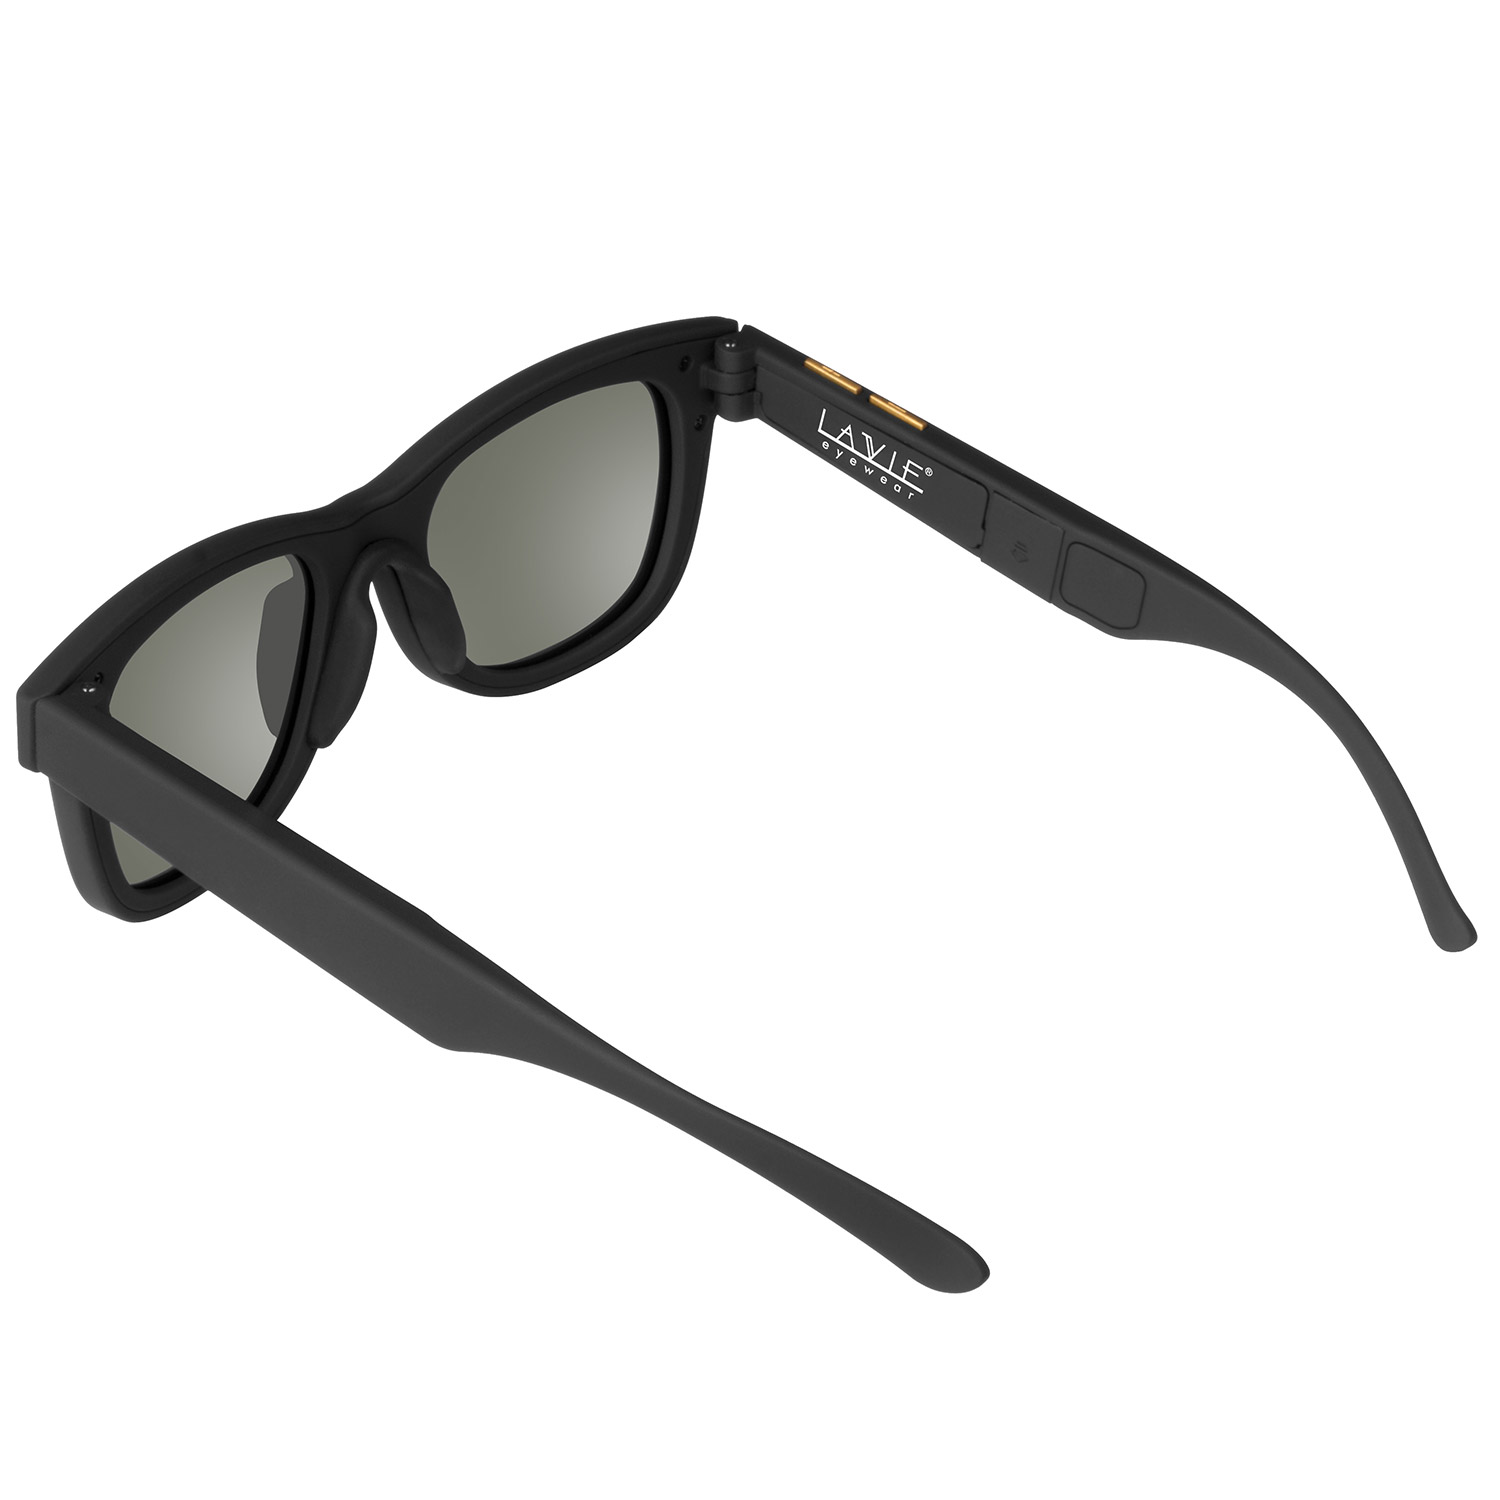 Sunglasses With Variable Electronic Tint Control Sunglasses Men